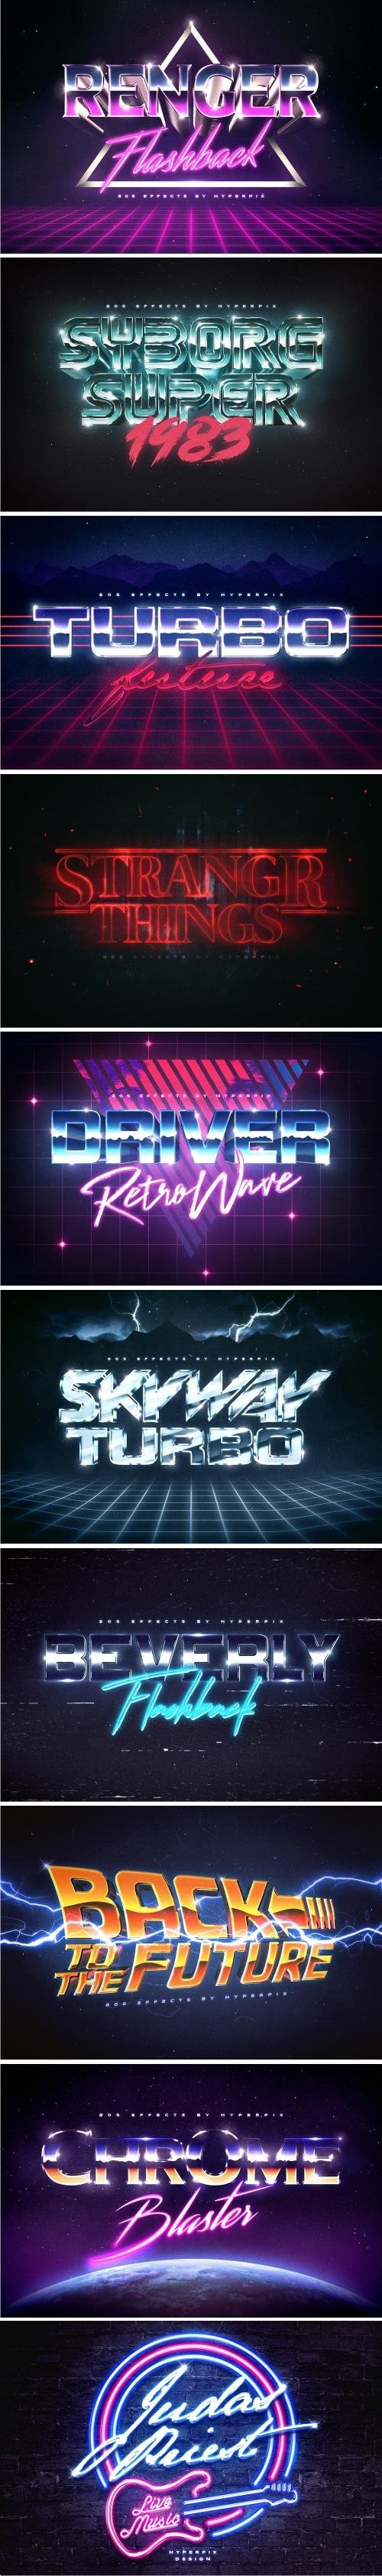 80s Text Effects Vol3 - 3479338